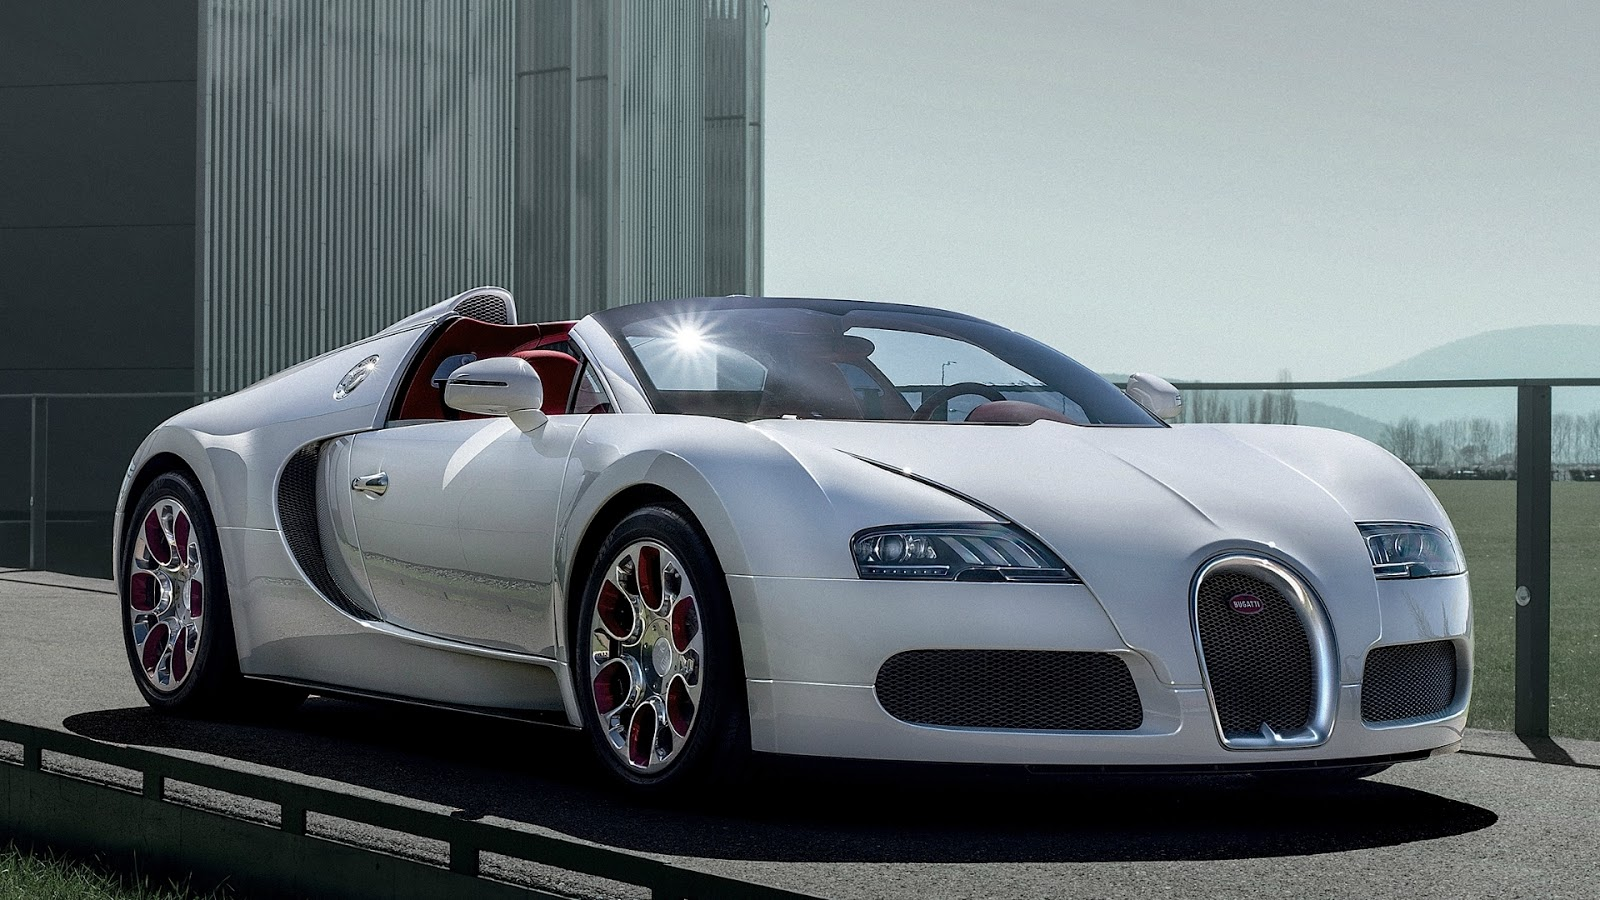 neoreleasecar 2012 bugatti veyron 16 4 grand sport super sport. Black Bedroom Furniture Sets. Home Design Ideas